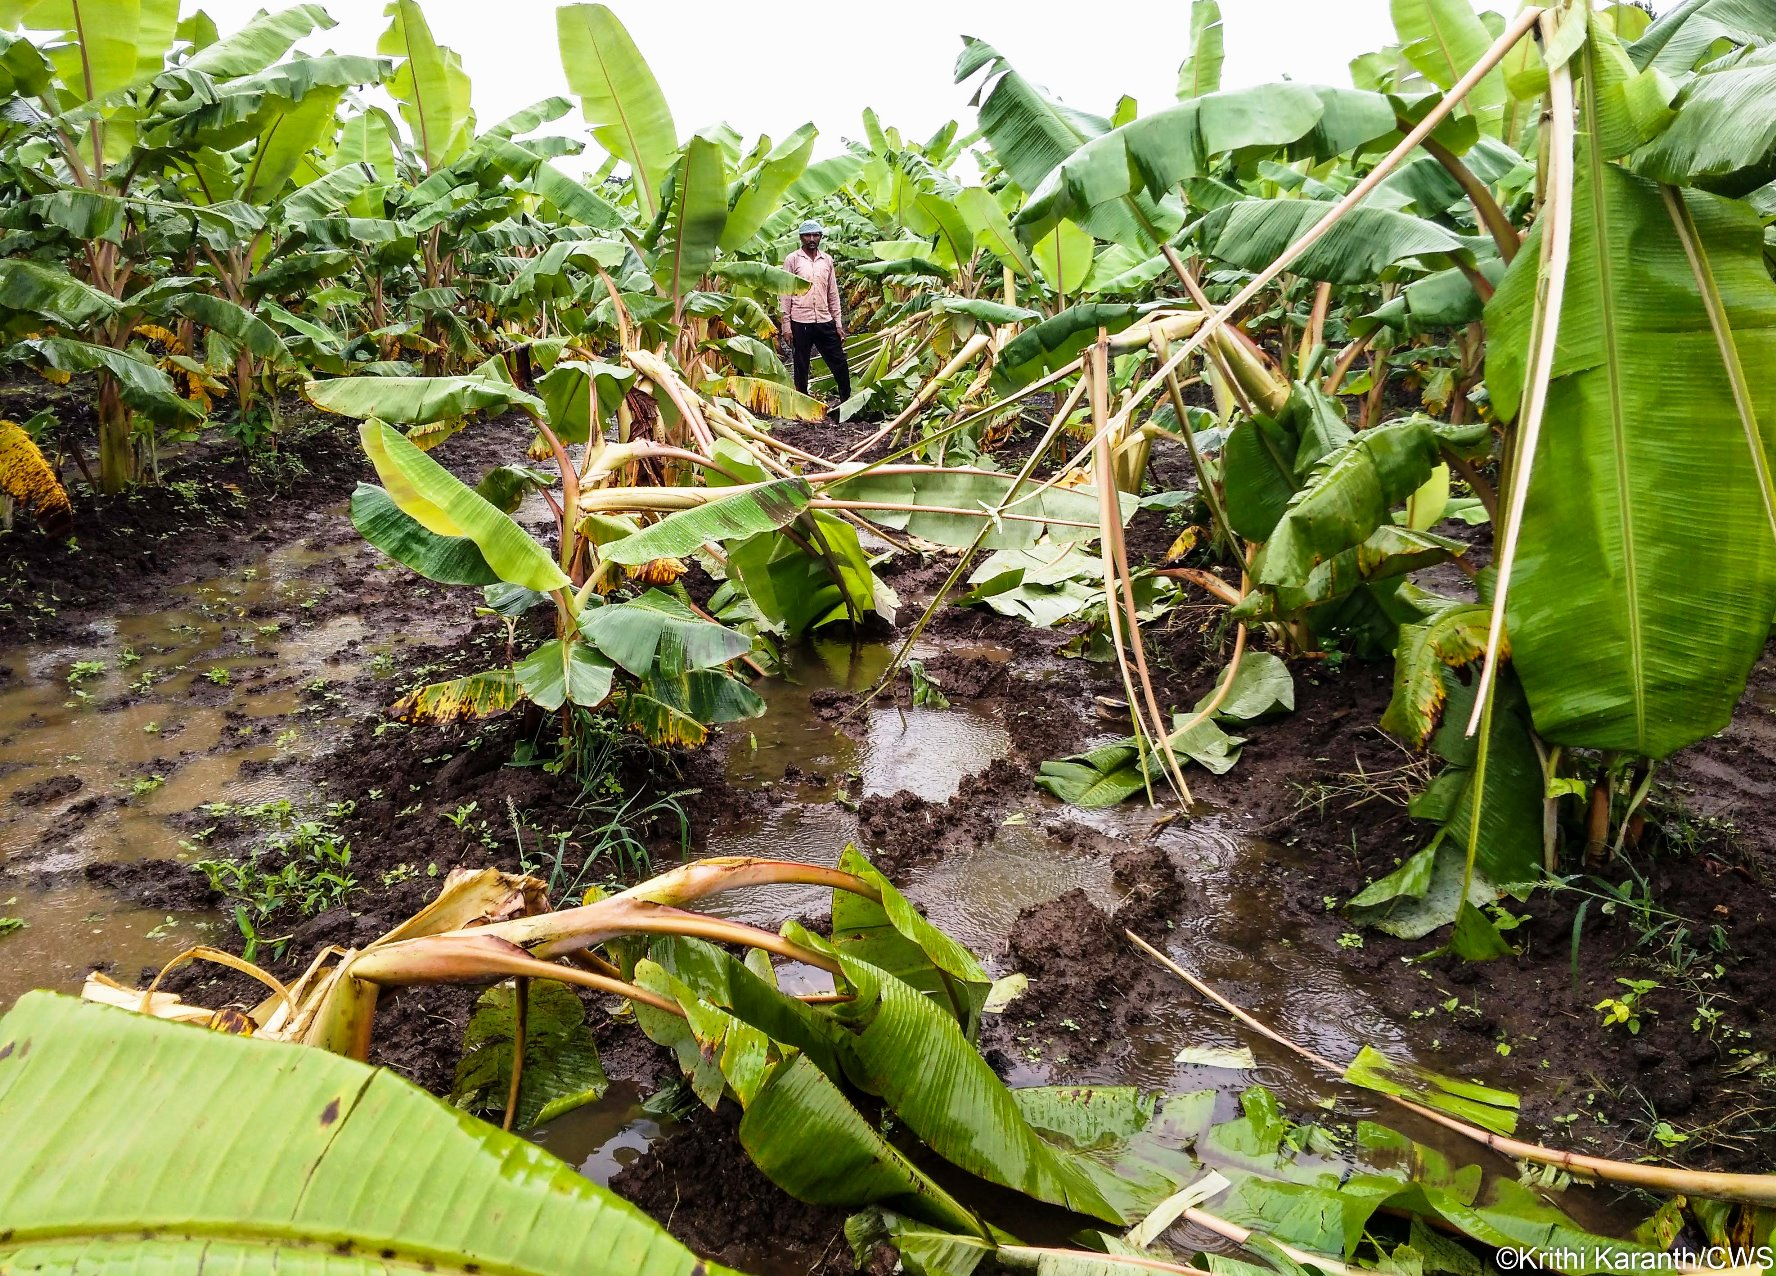 An Indian farmer in his banana field damaged by opportunistic elephants moving through the area.